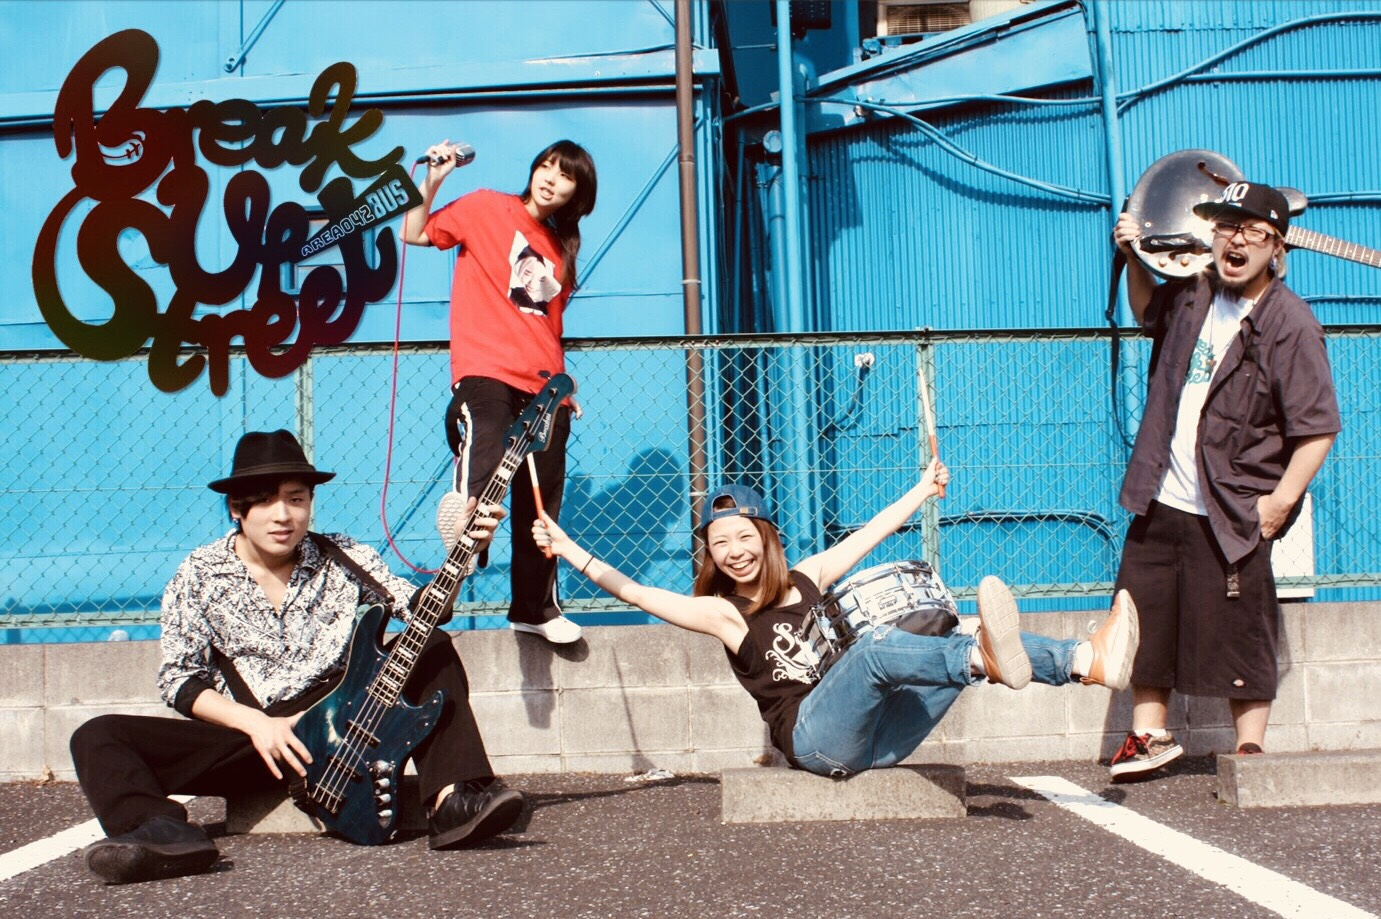 Break Up Street 1st e.p 『Vroooom!!』release tour 〜'30発'01行 ぶーんバスツアー〜